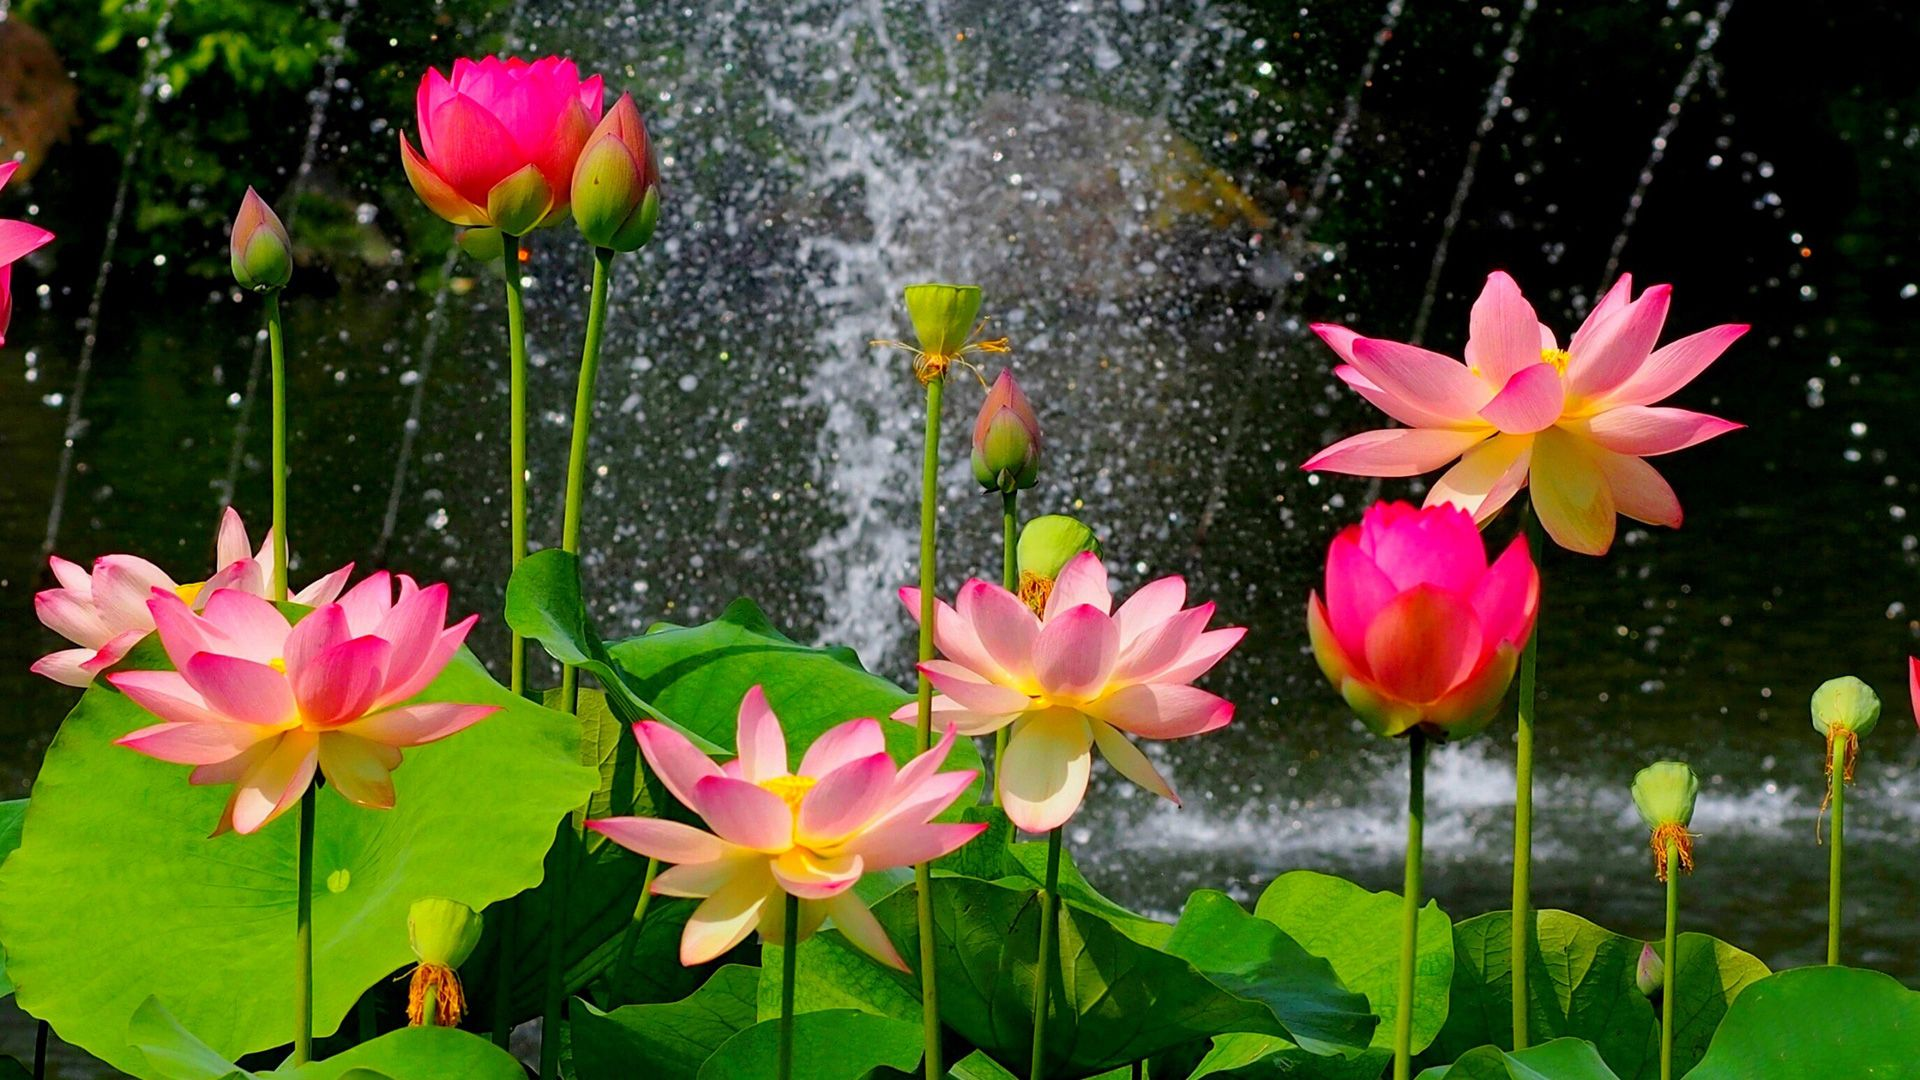 Lotus Images Wallpaper HD Quality Wallpapers Full Size